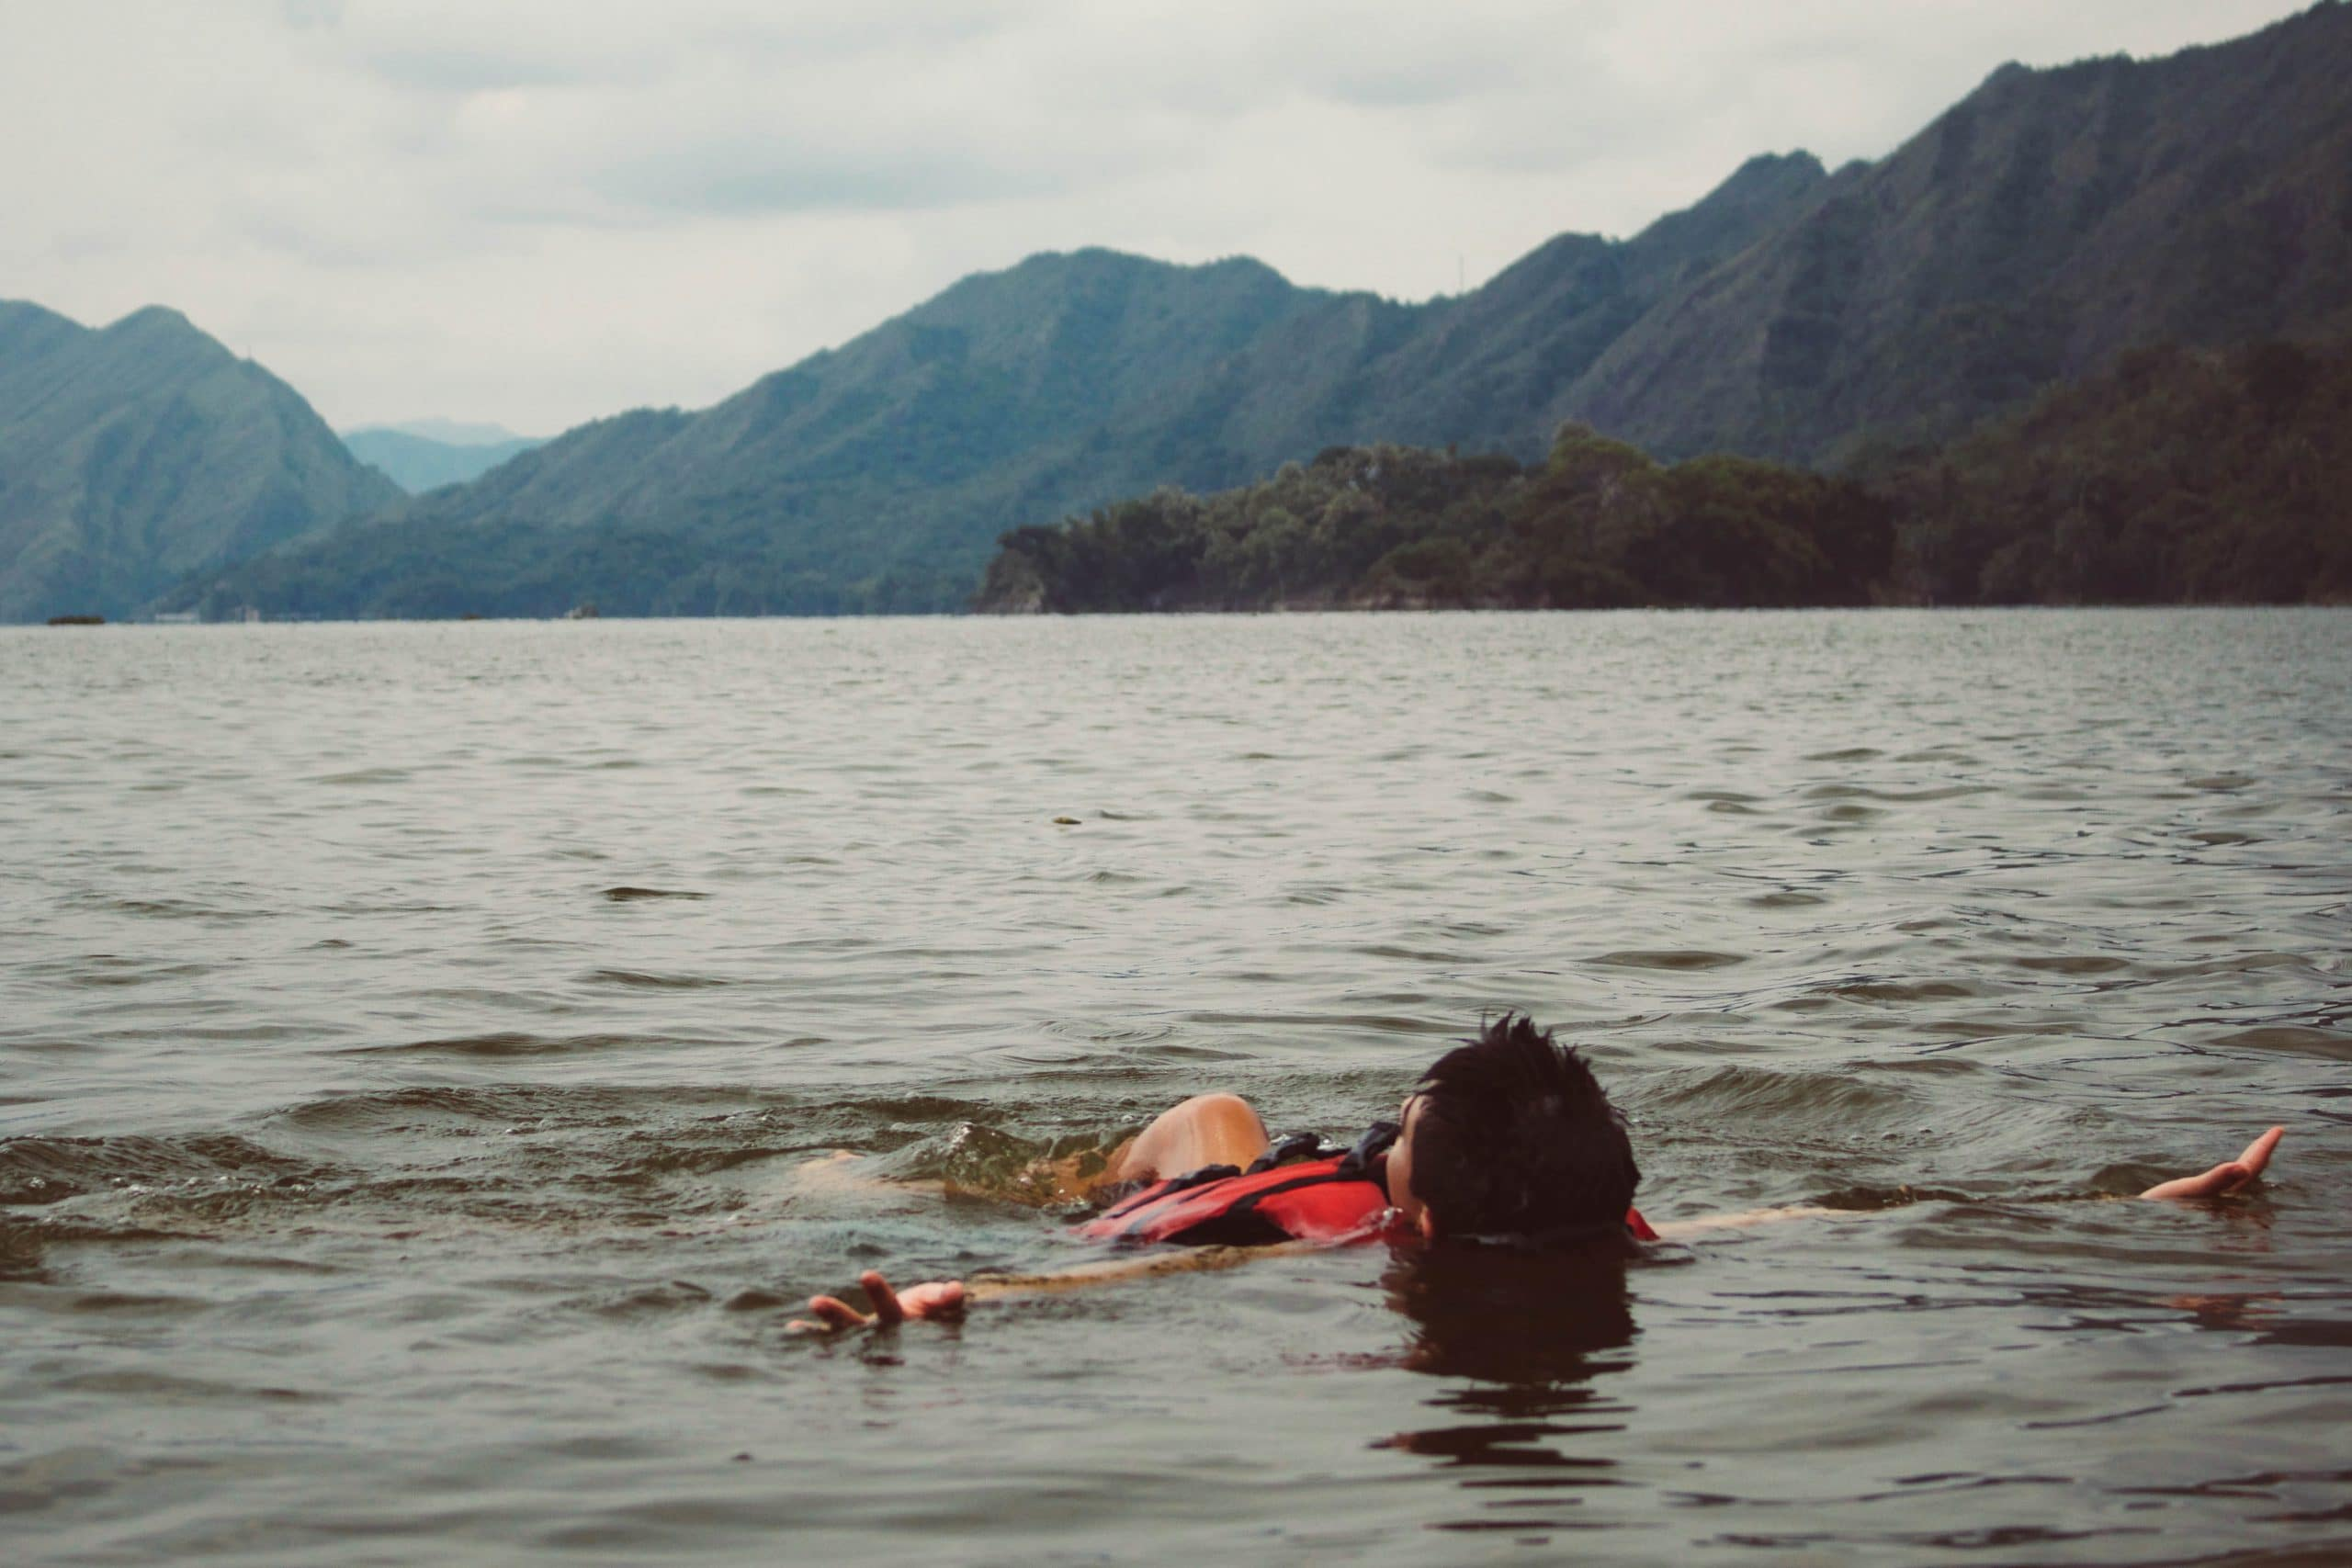 Swimmer swimming in a lake